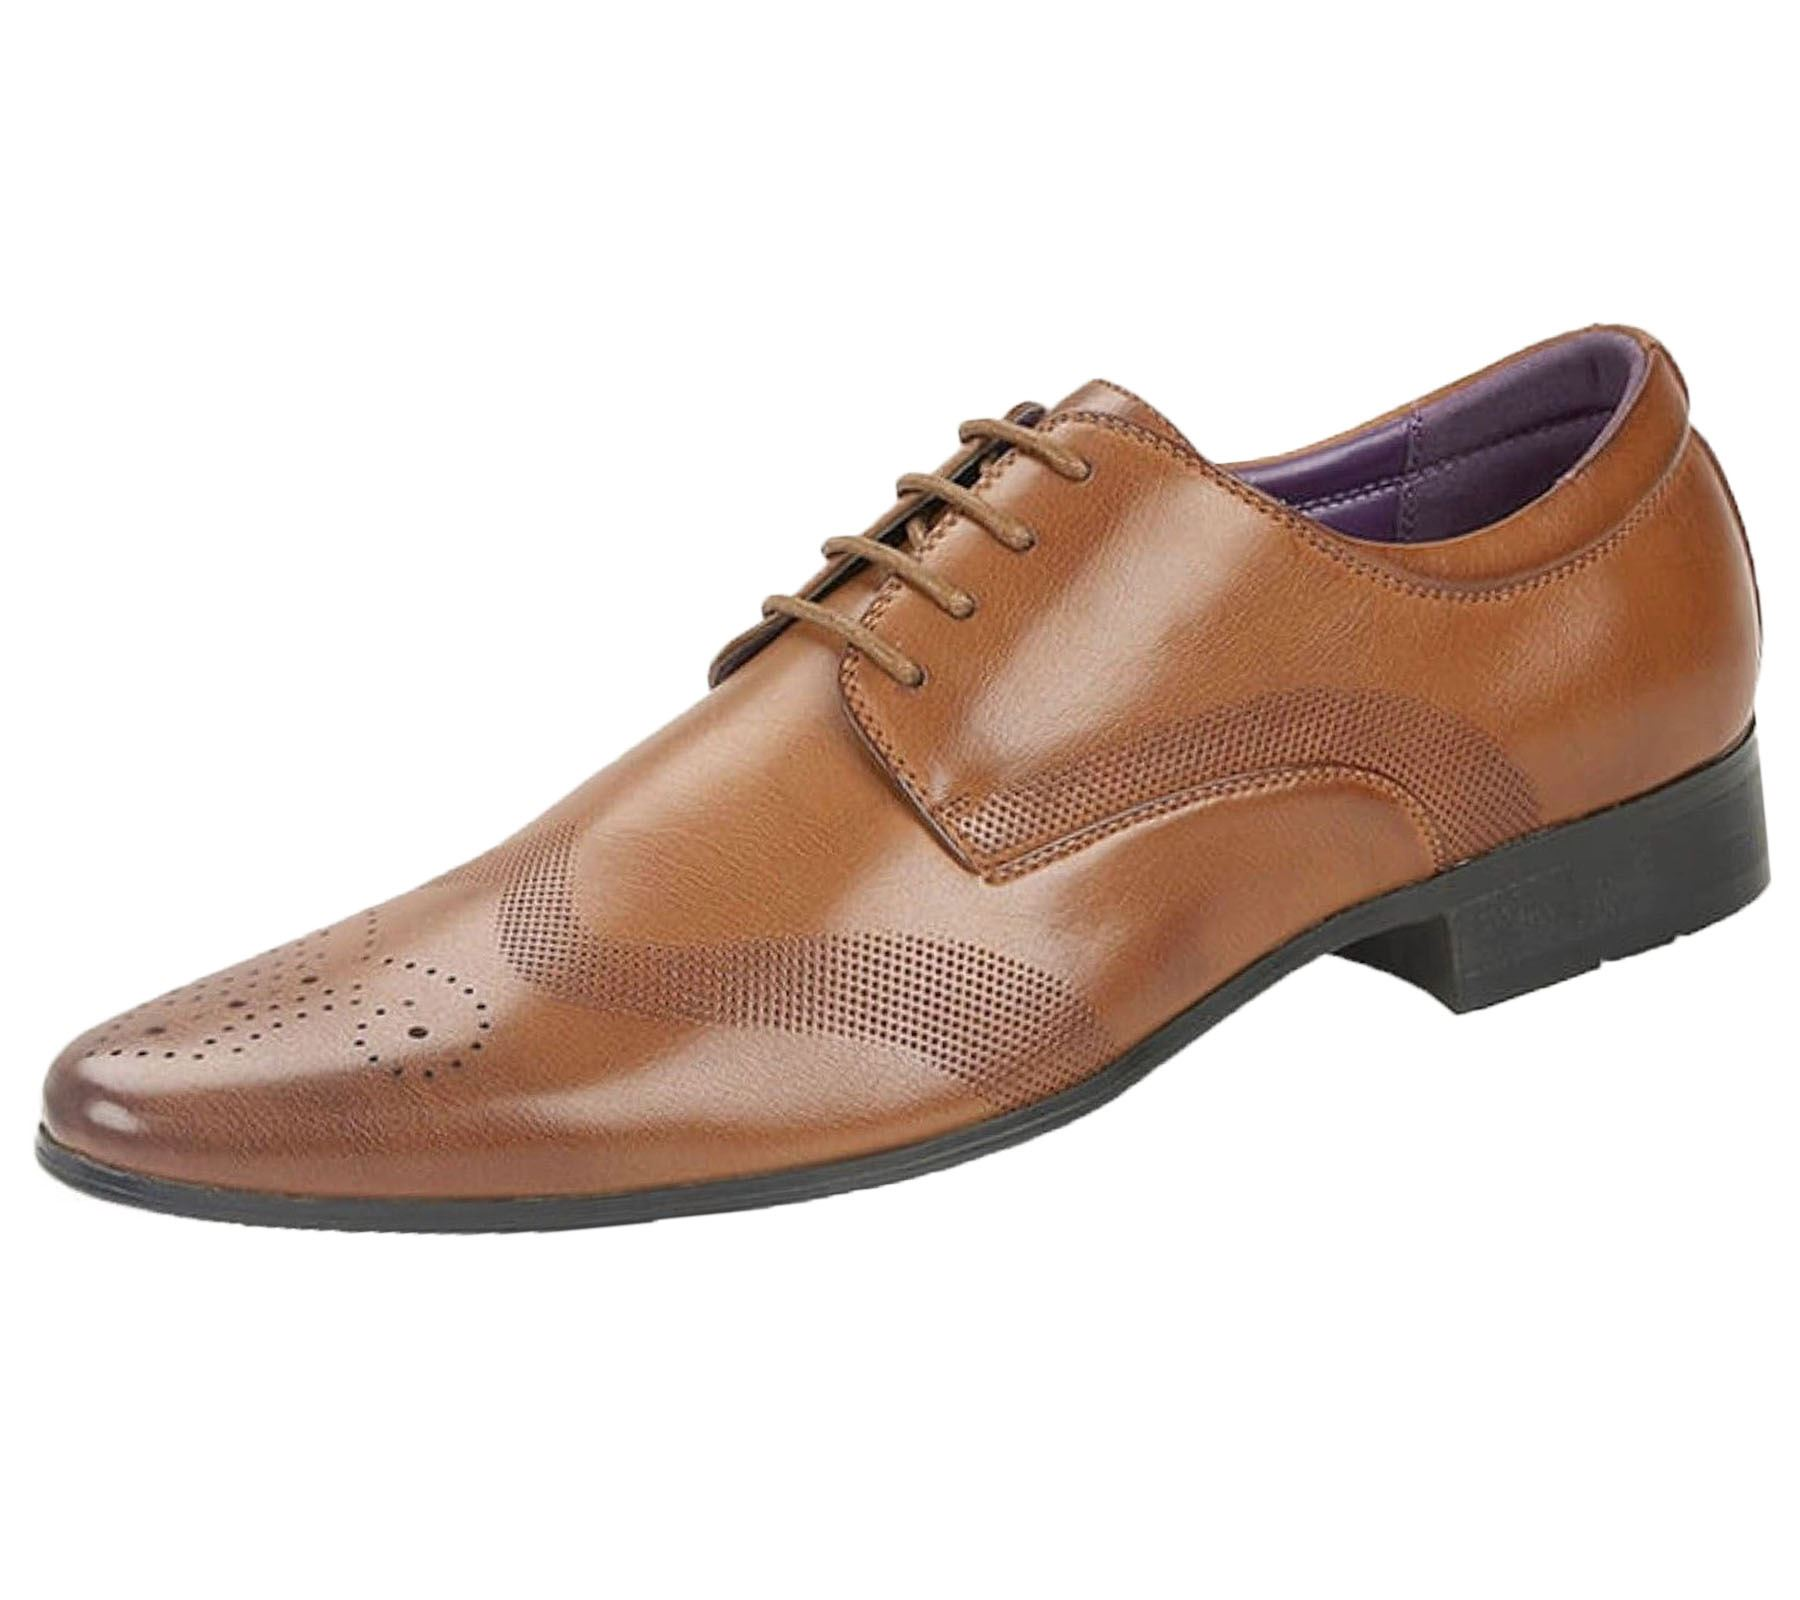 Mens-Brogues-Shoes-Office-Wedding-Formal-Smart-Dress-Shoes-New-Size miniatura 13